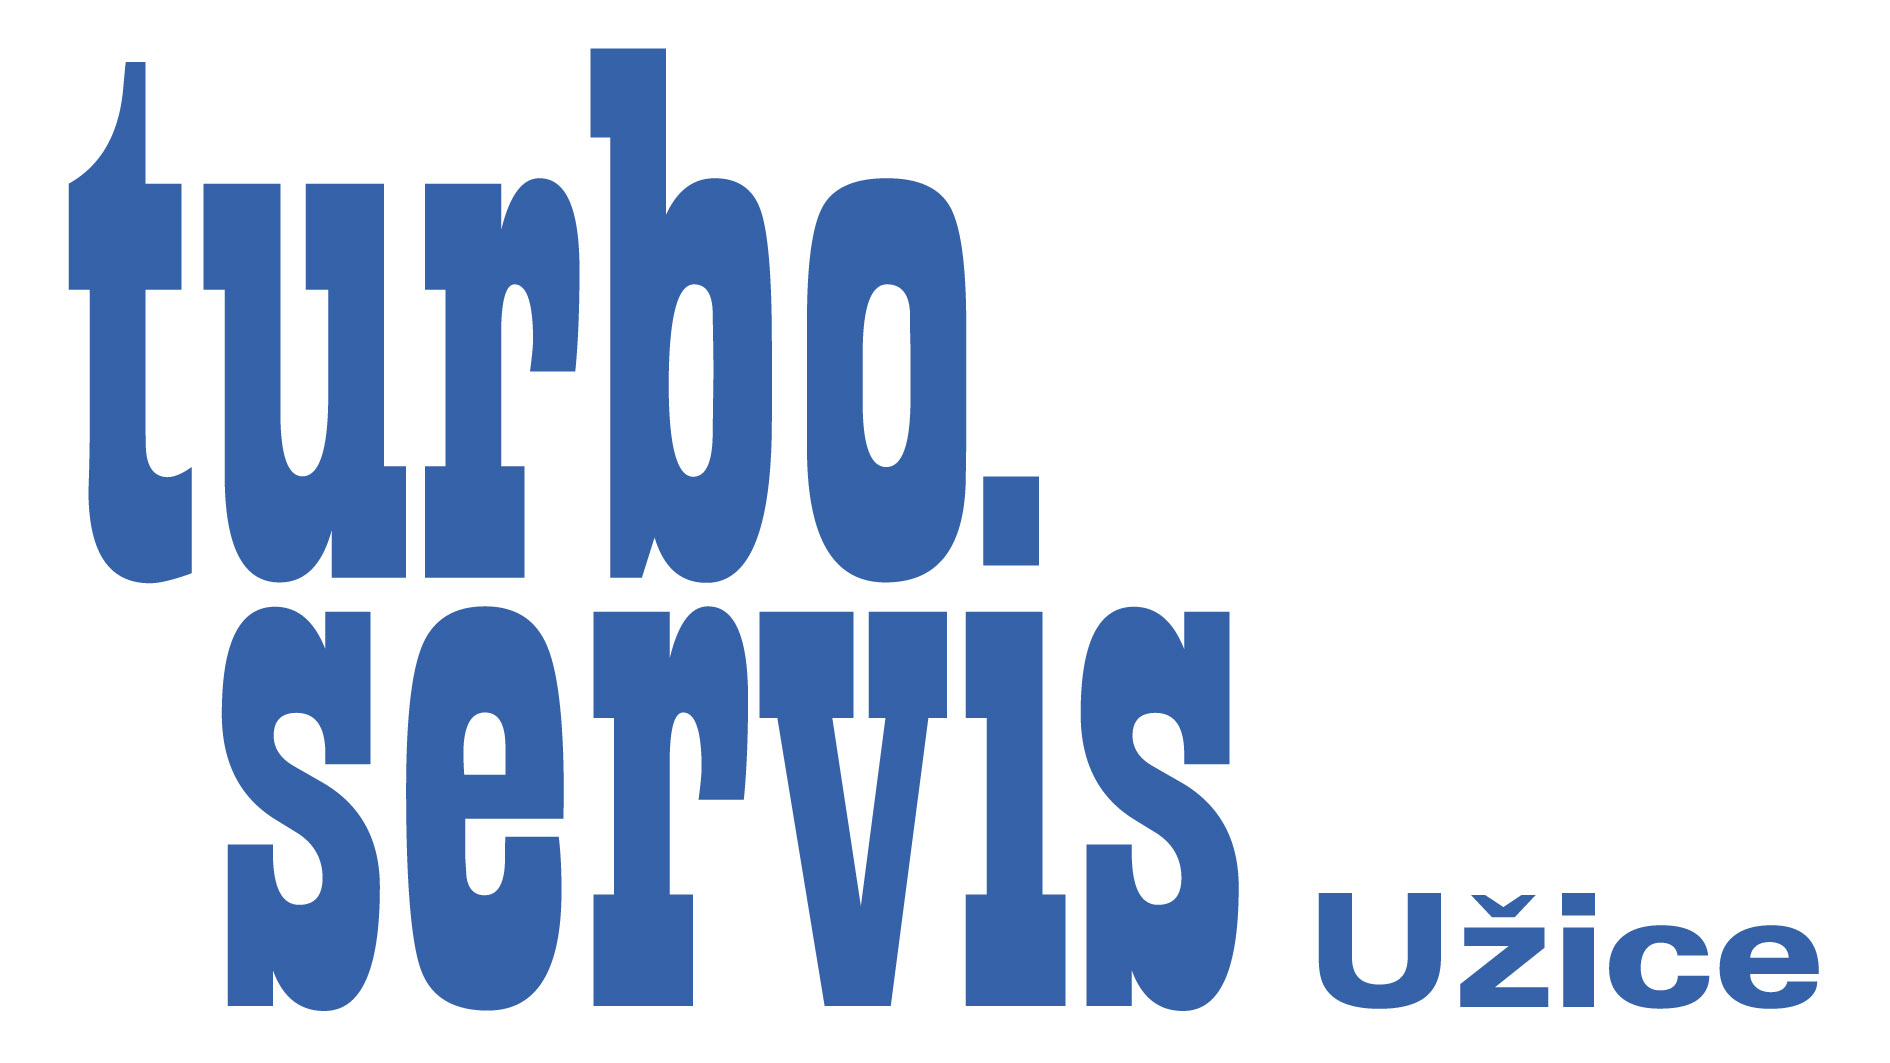 Turbo Servis Logo